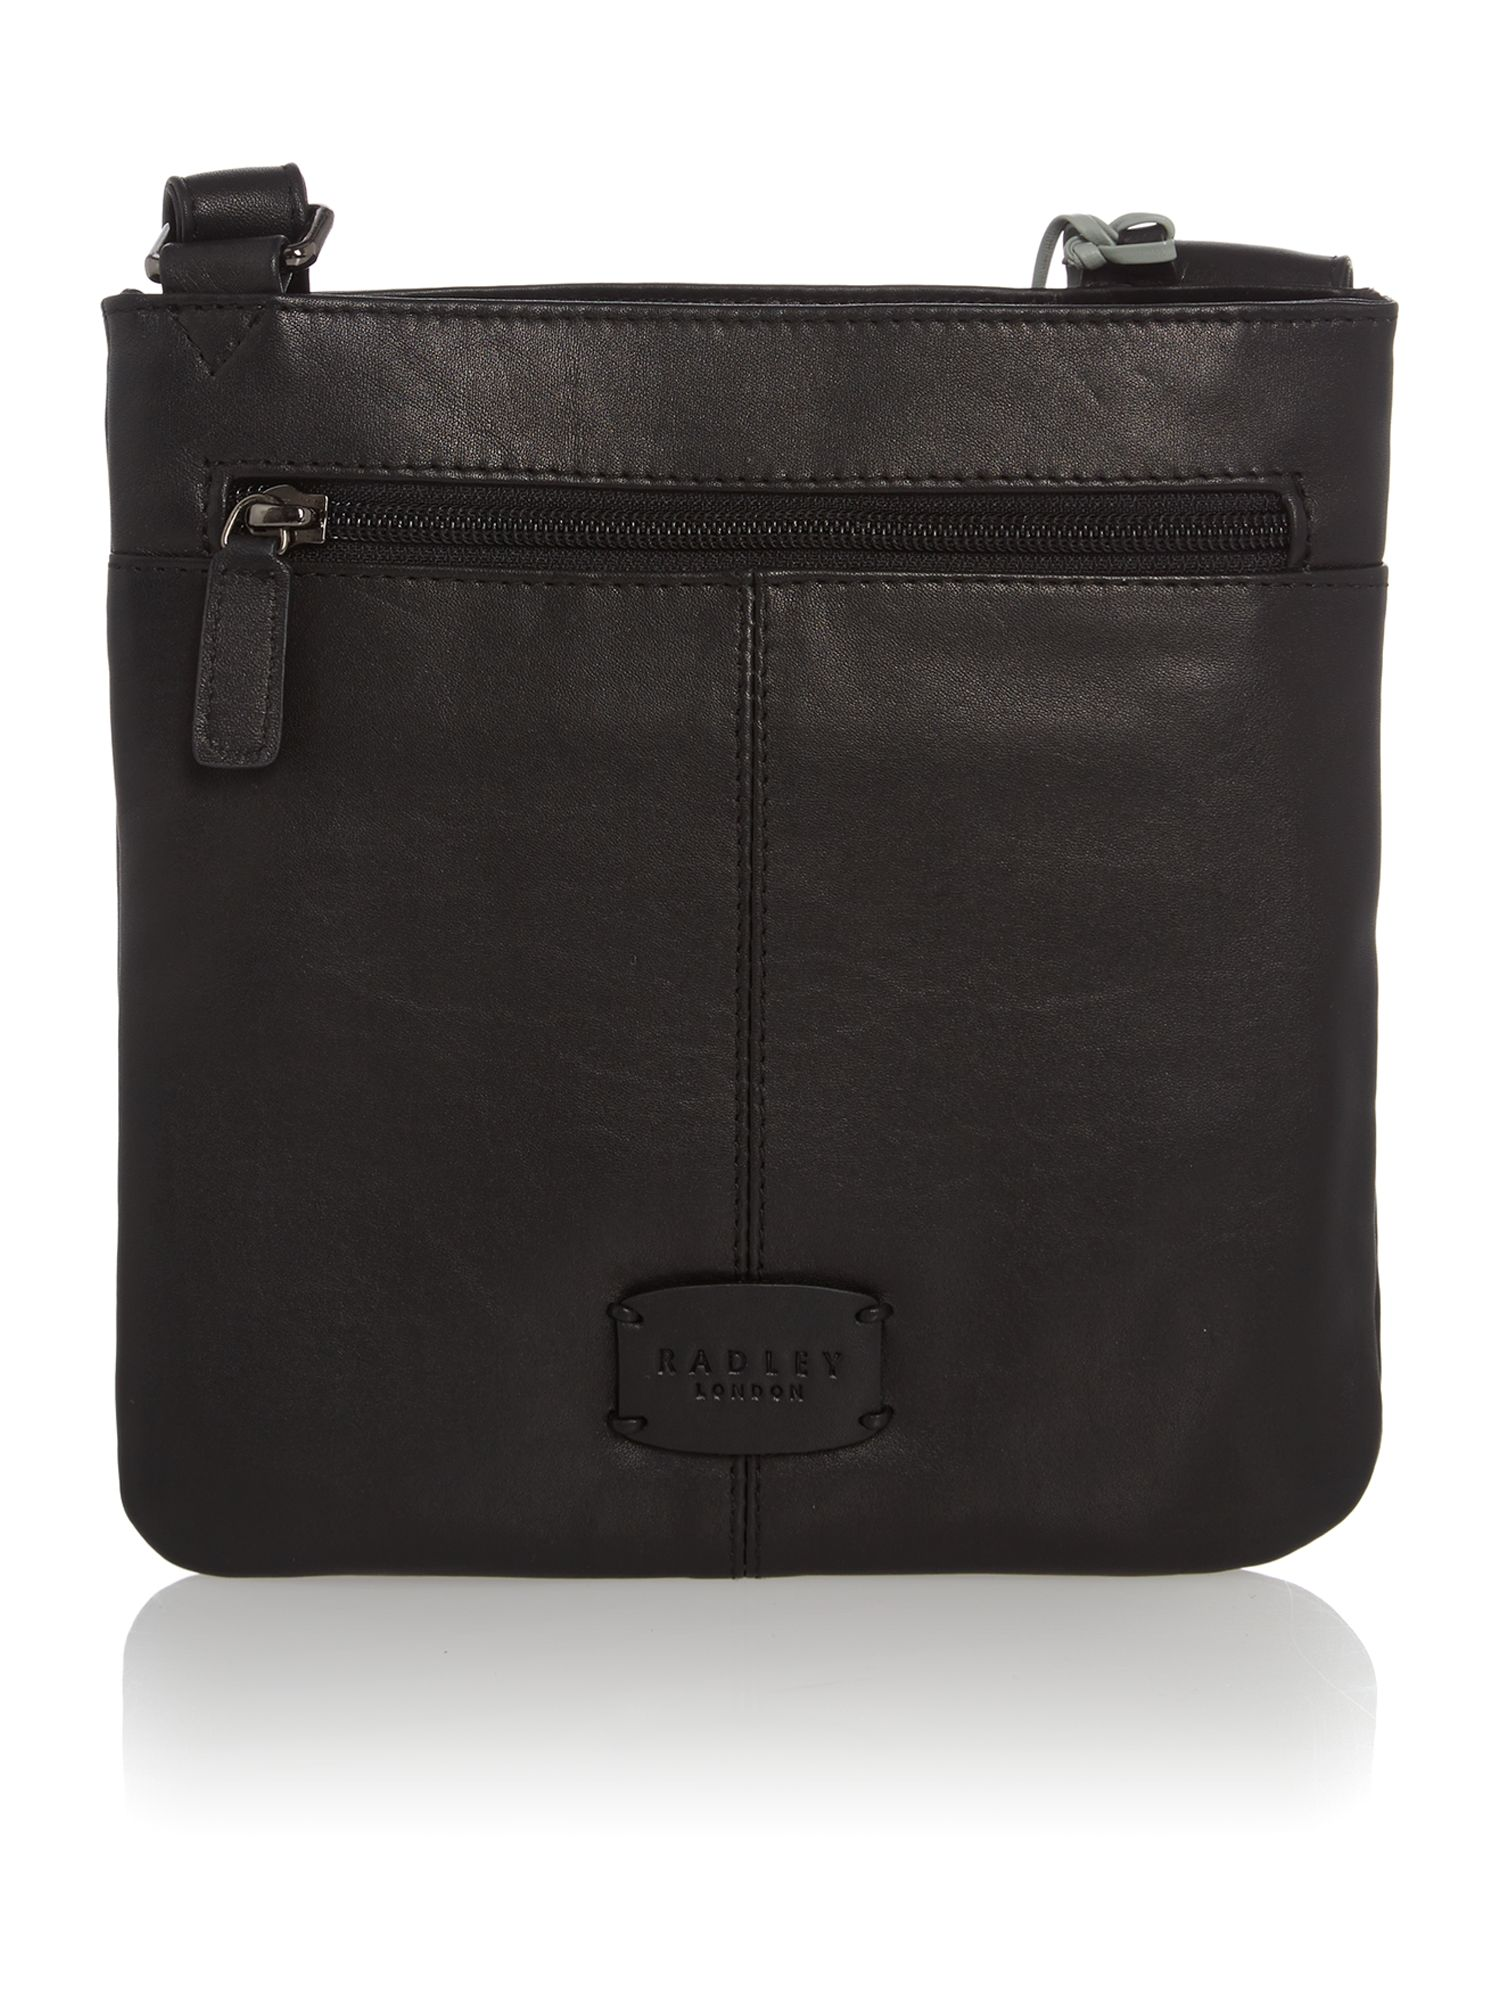 Medium black cross body pocket bag